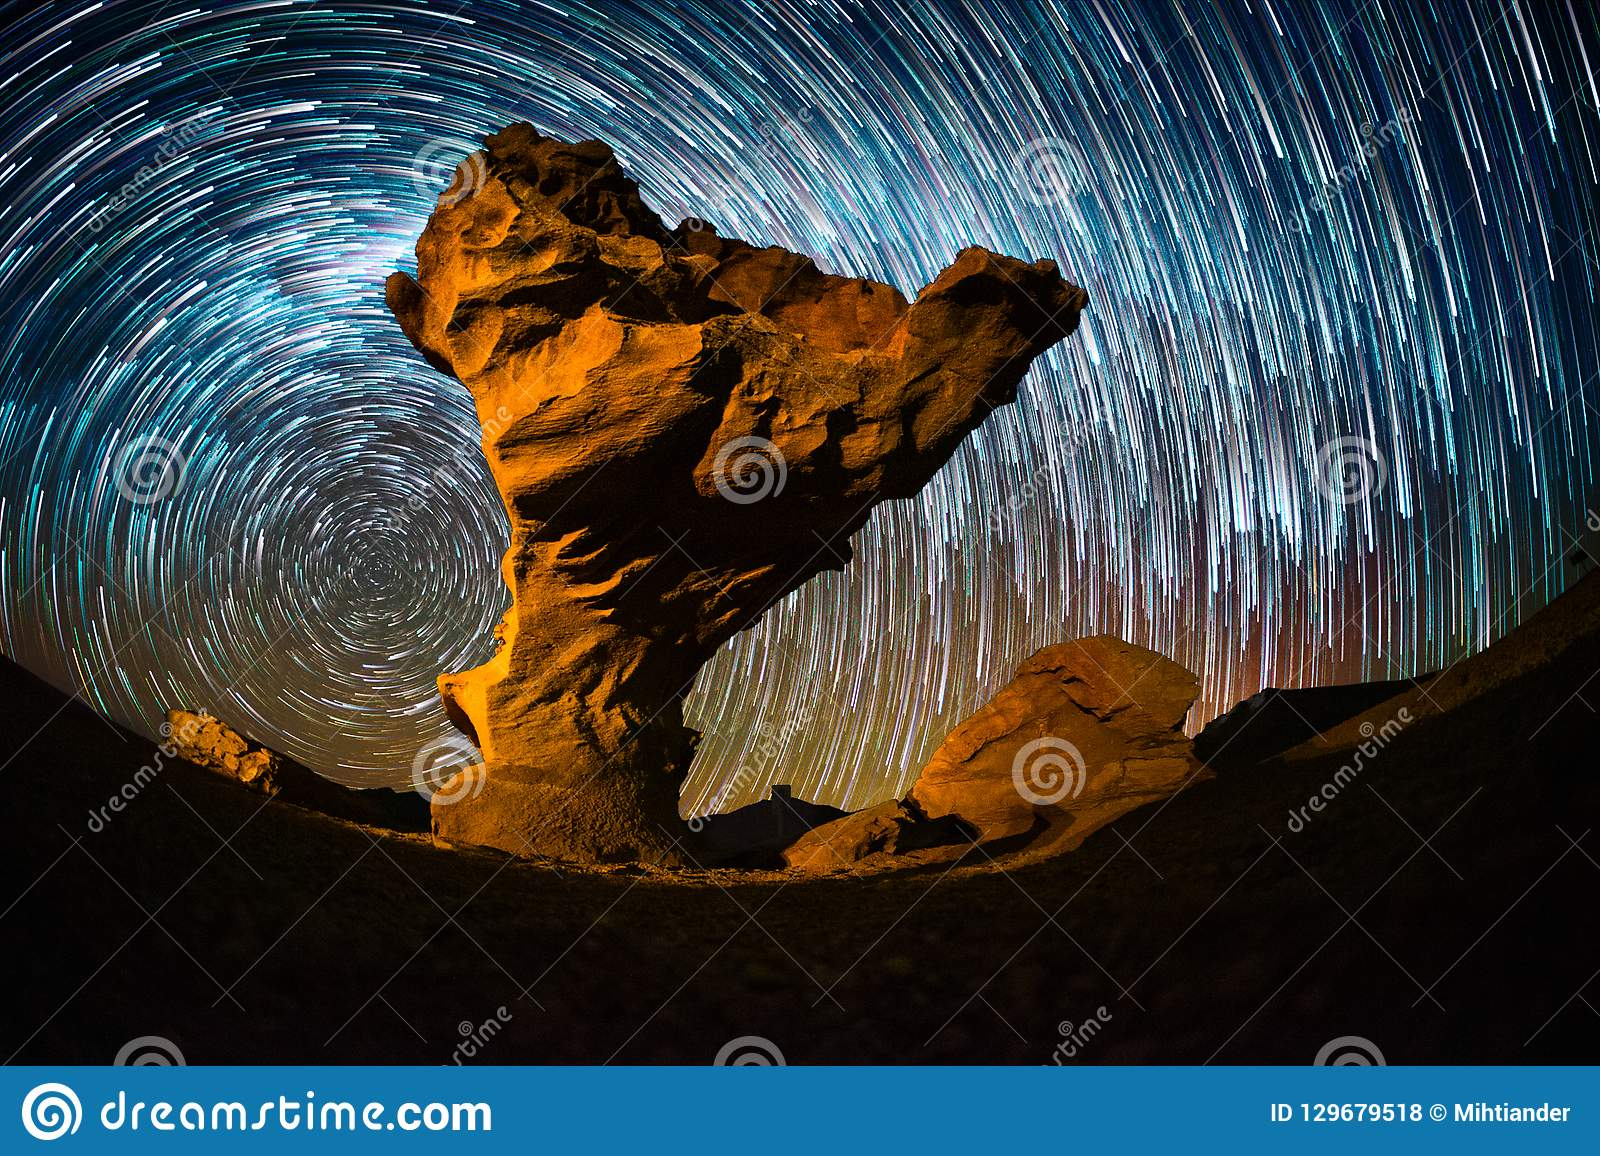 Starry sky with the star trails